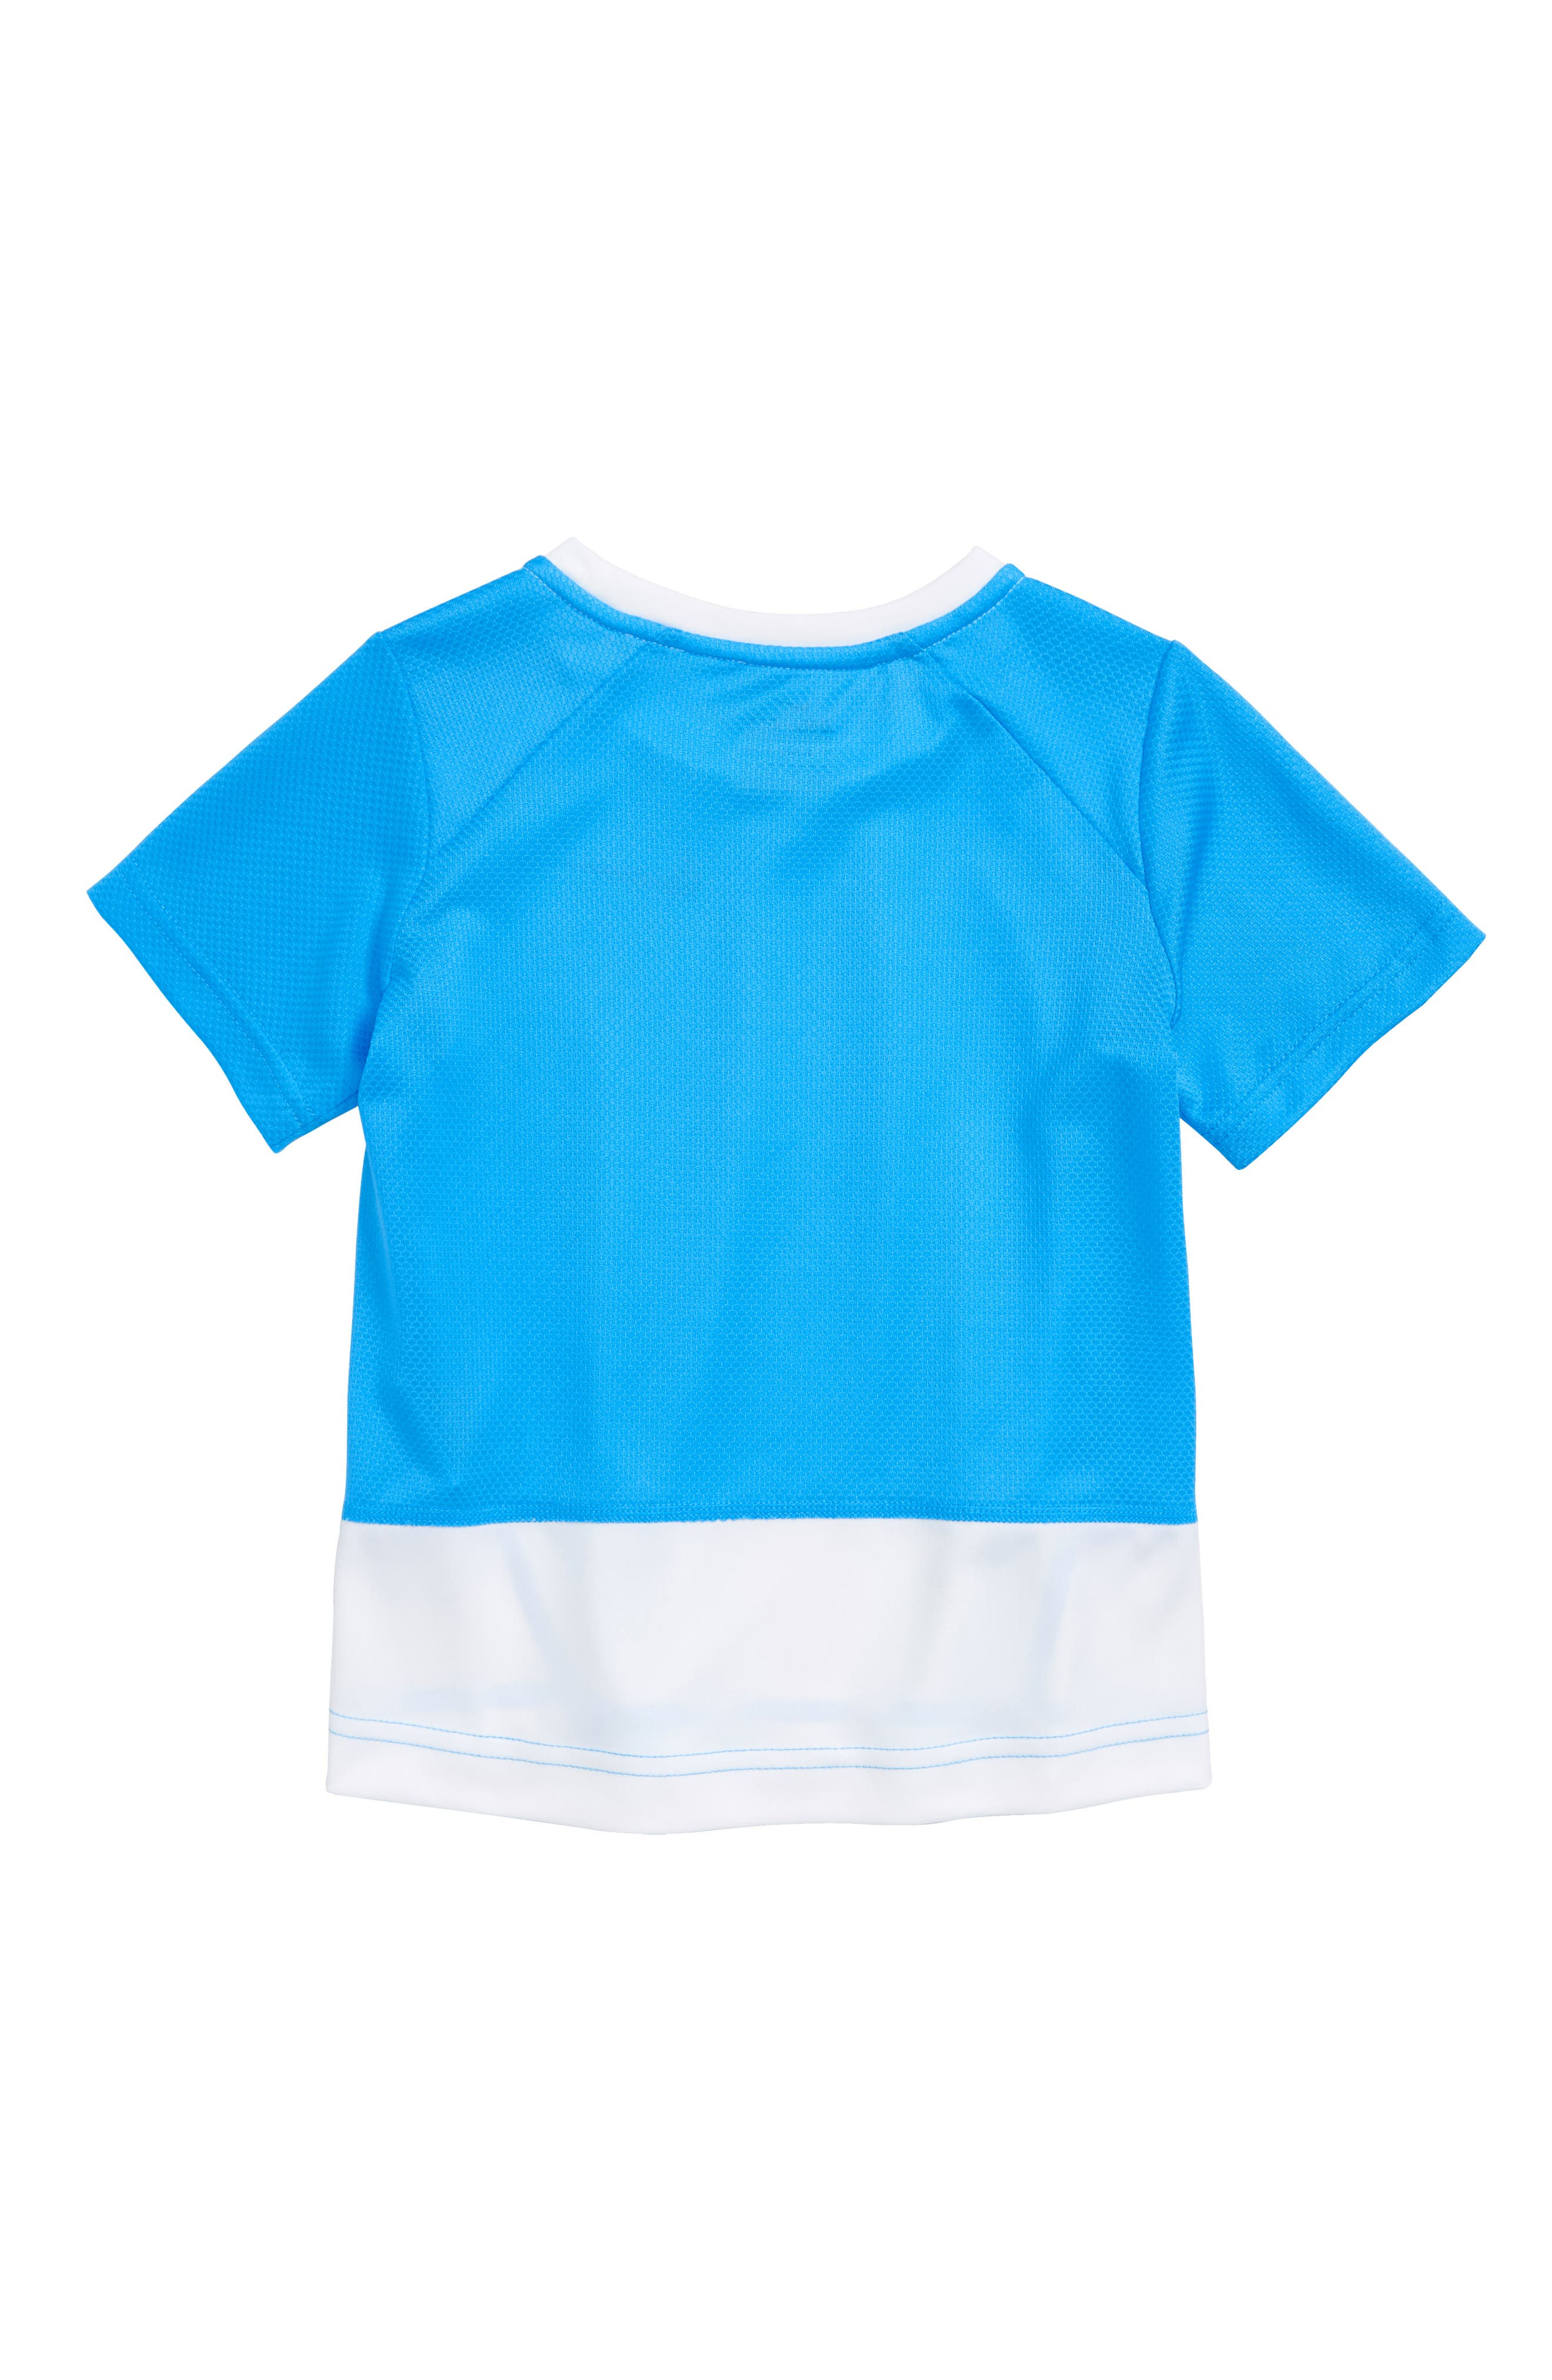 Dry INSTACOOL Shirt,                             Alternate thumbnail 2, color,                             Equator Blue